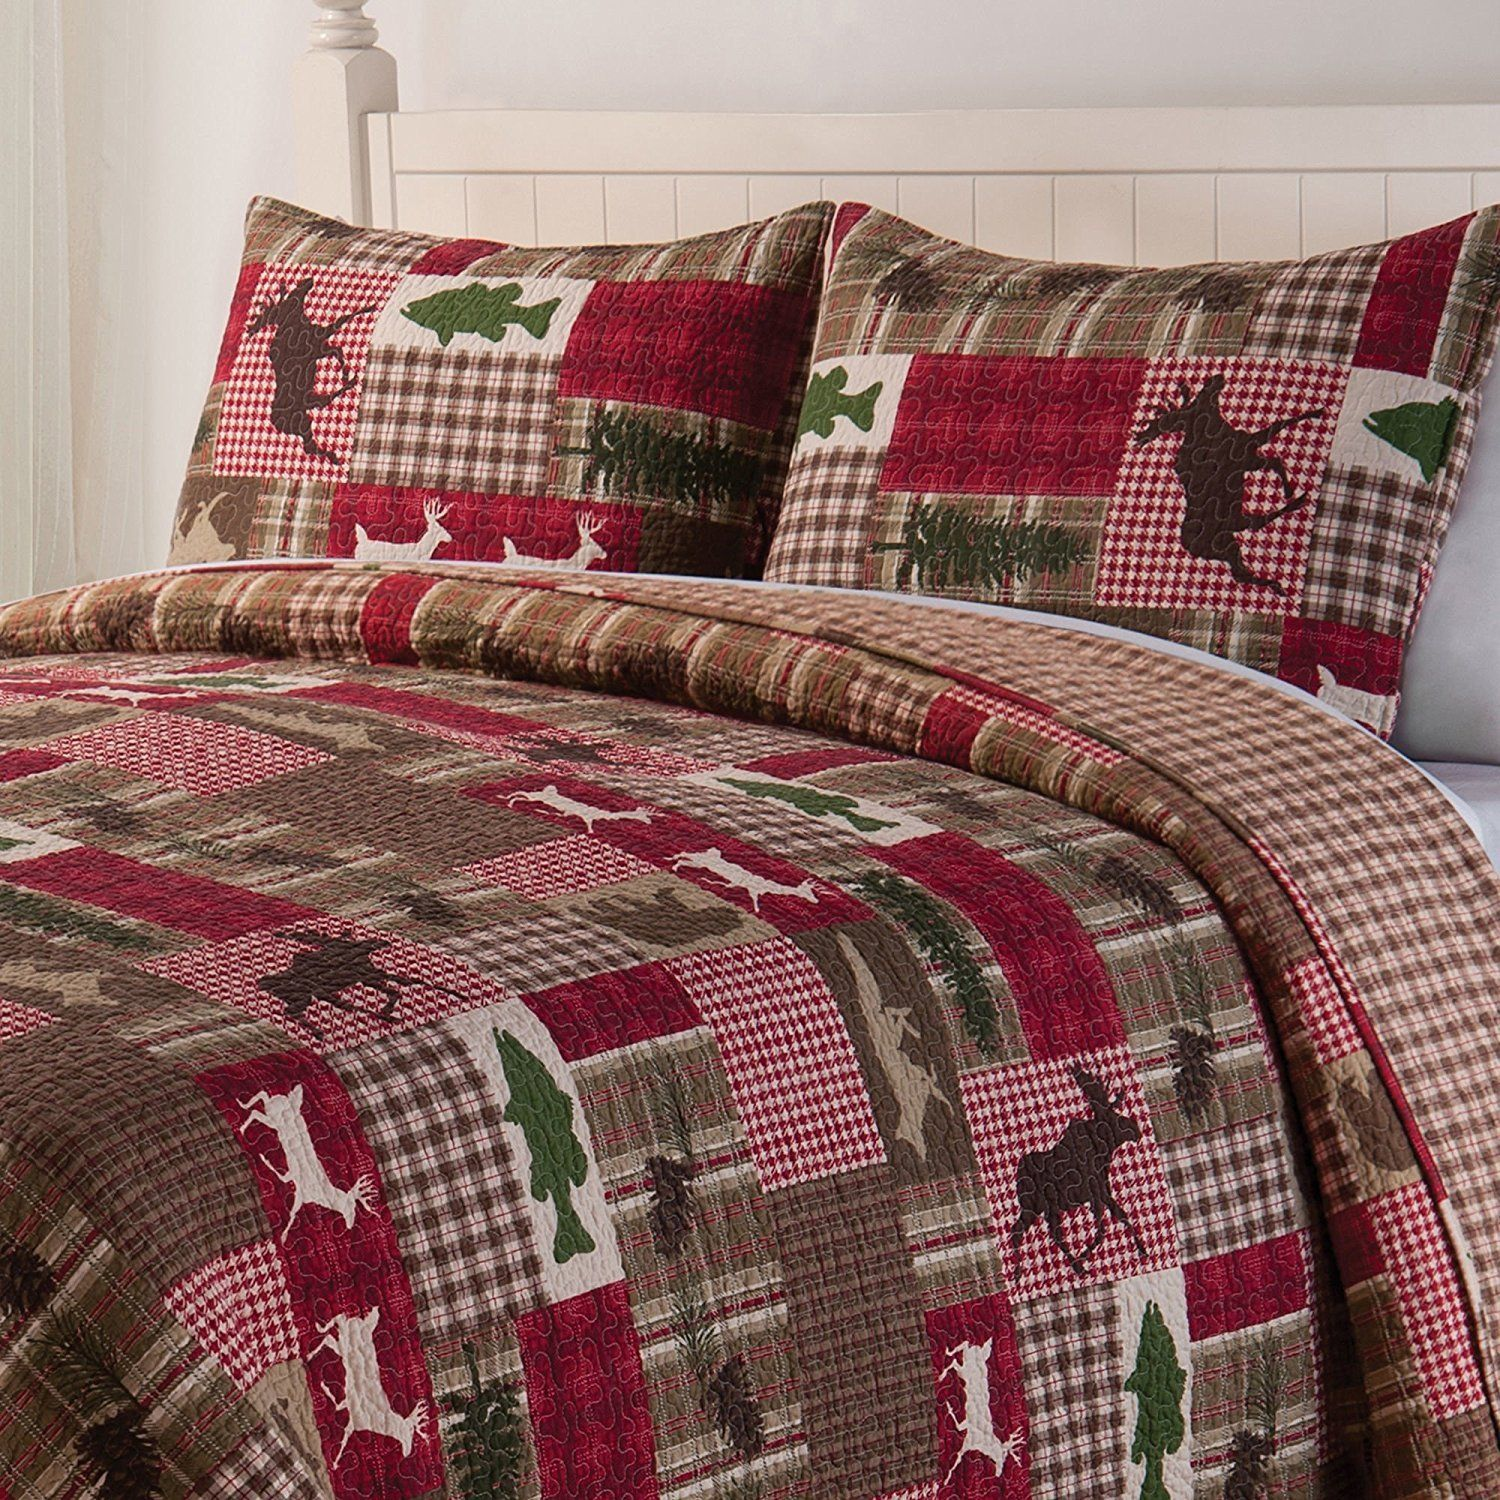 Green Red Brown Moose Deer Hunting Themed King Quilt Set